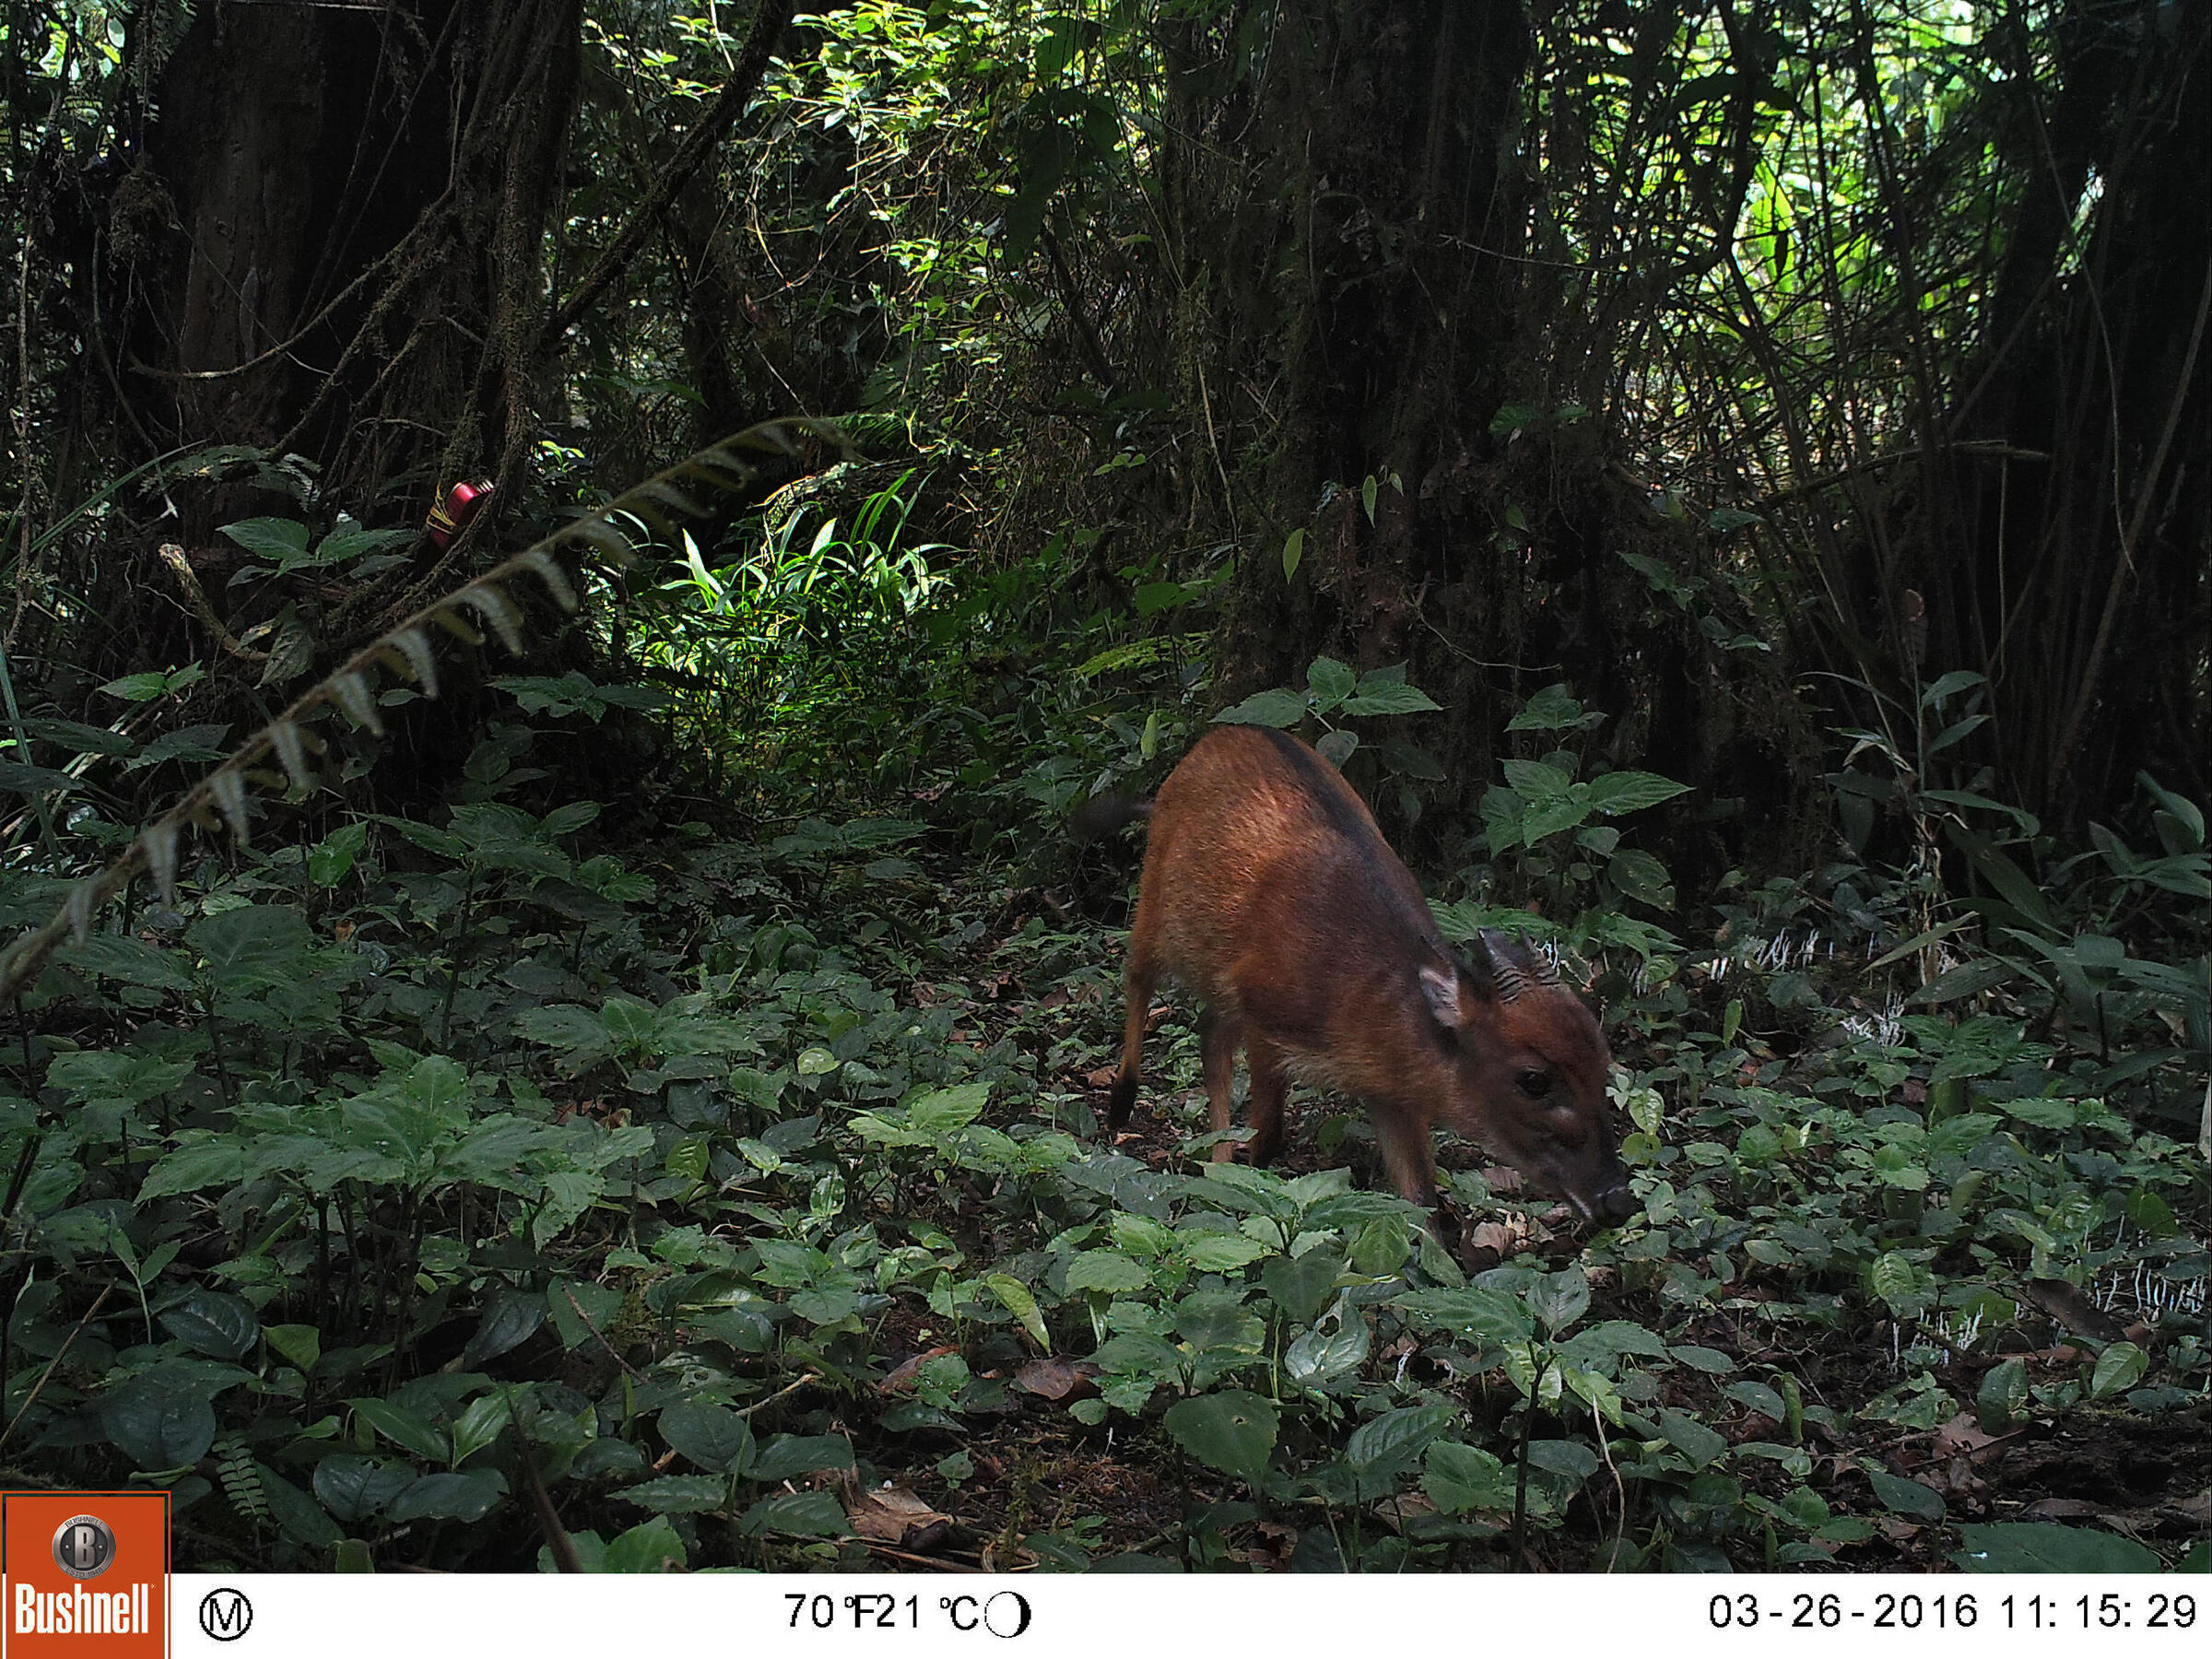 An Ogilby's duiker, a small forest antelope and one of two duiker species on Bioko. Kristin Brzeski